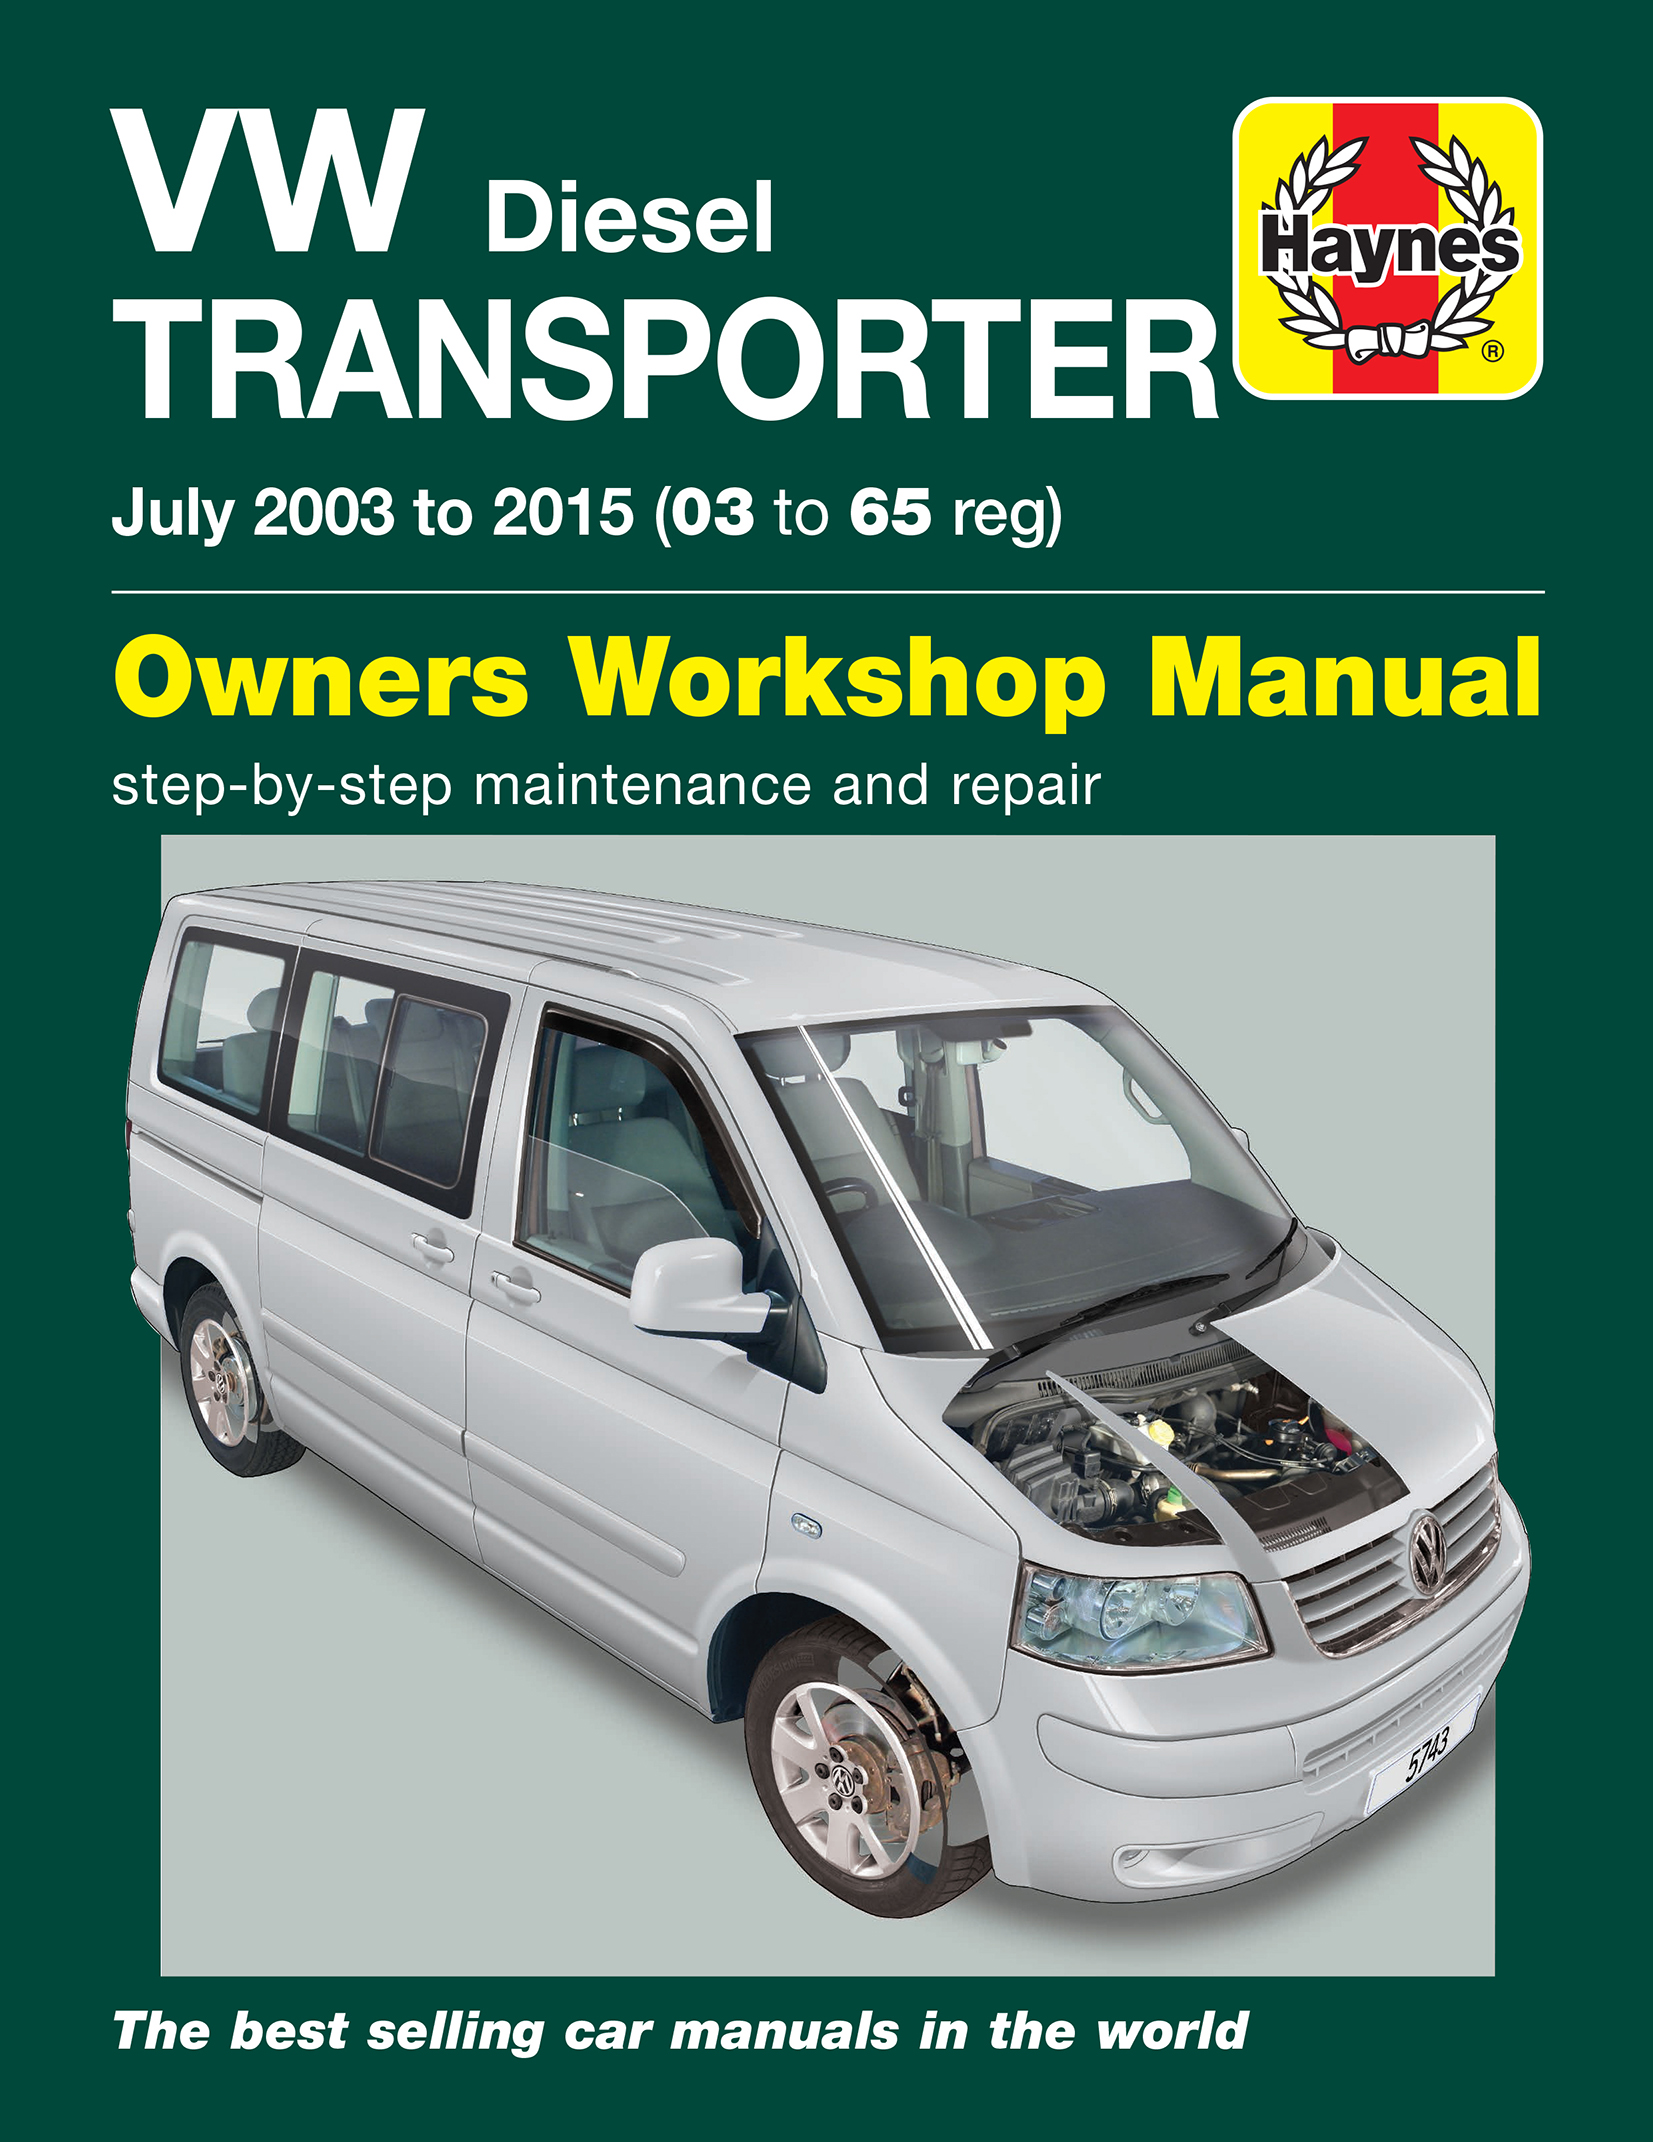 Enlarge VW T5 Transporter (July 03 - 15) Haynes Repair Manual